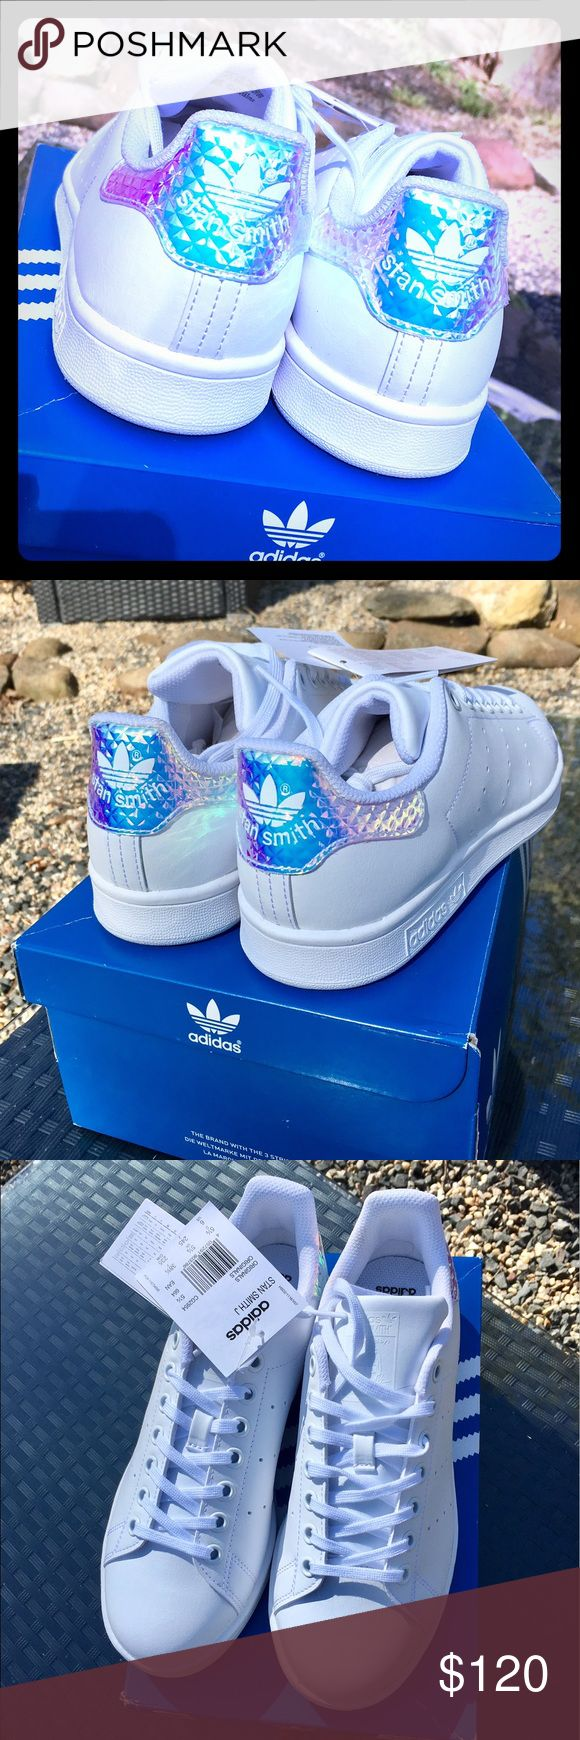 Adidas Original Stan Smith 3D Diamond Iridescent Rare!  Imported from Italy and not available in the USA. OrthoLite. Size 38 euro or 7.5 US women's/6 US men's. Adidas runs large so these fit like US Womens' 8.5. Fantastic holographic, 3D diamond pattern, iridescent quilted back heel, white leather, white sole. Clean, simple, bling back!  Brand new with tags and in box. Adidas Shoes Sneakers